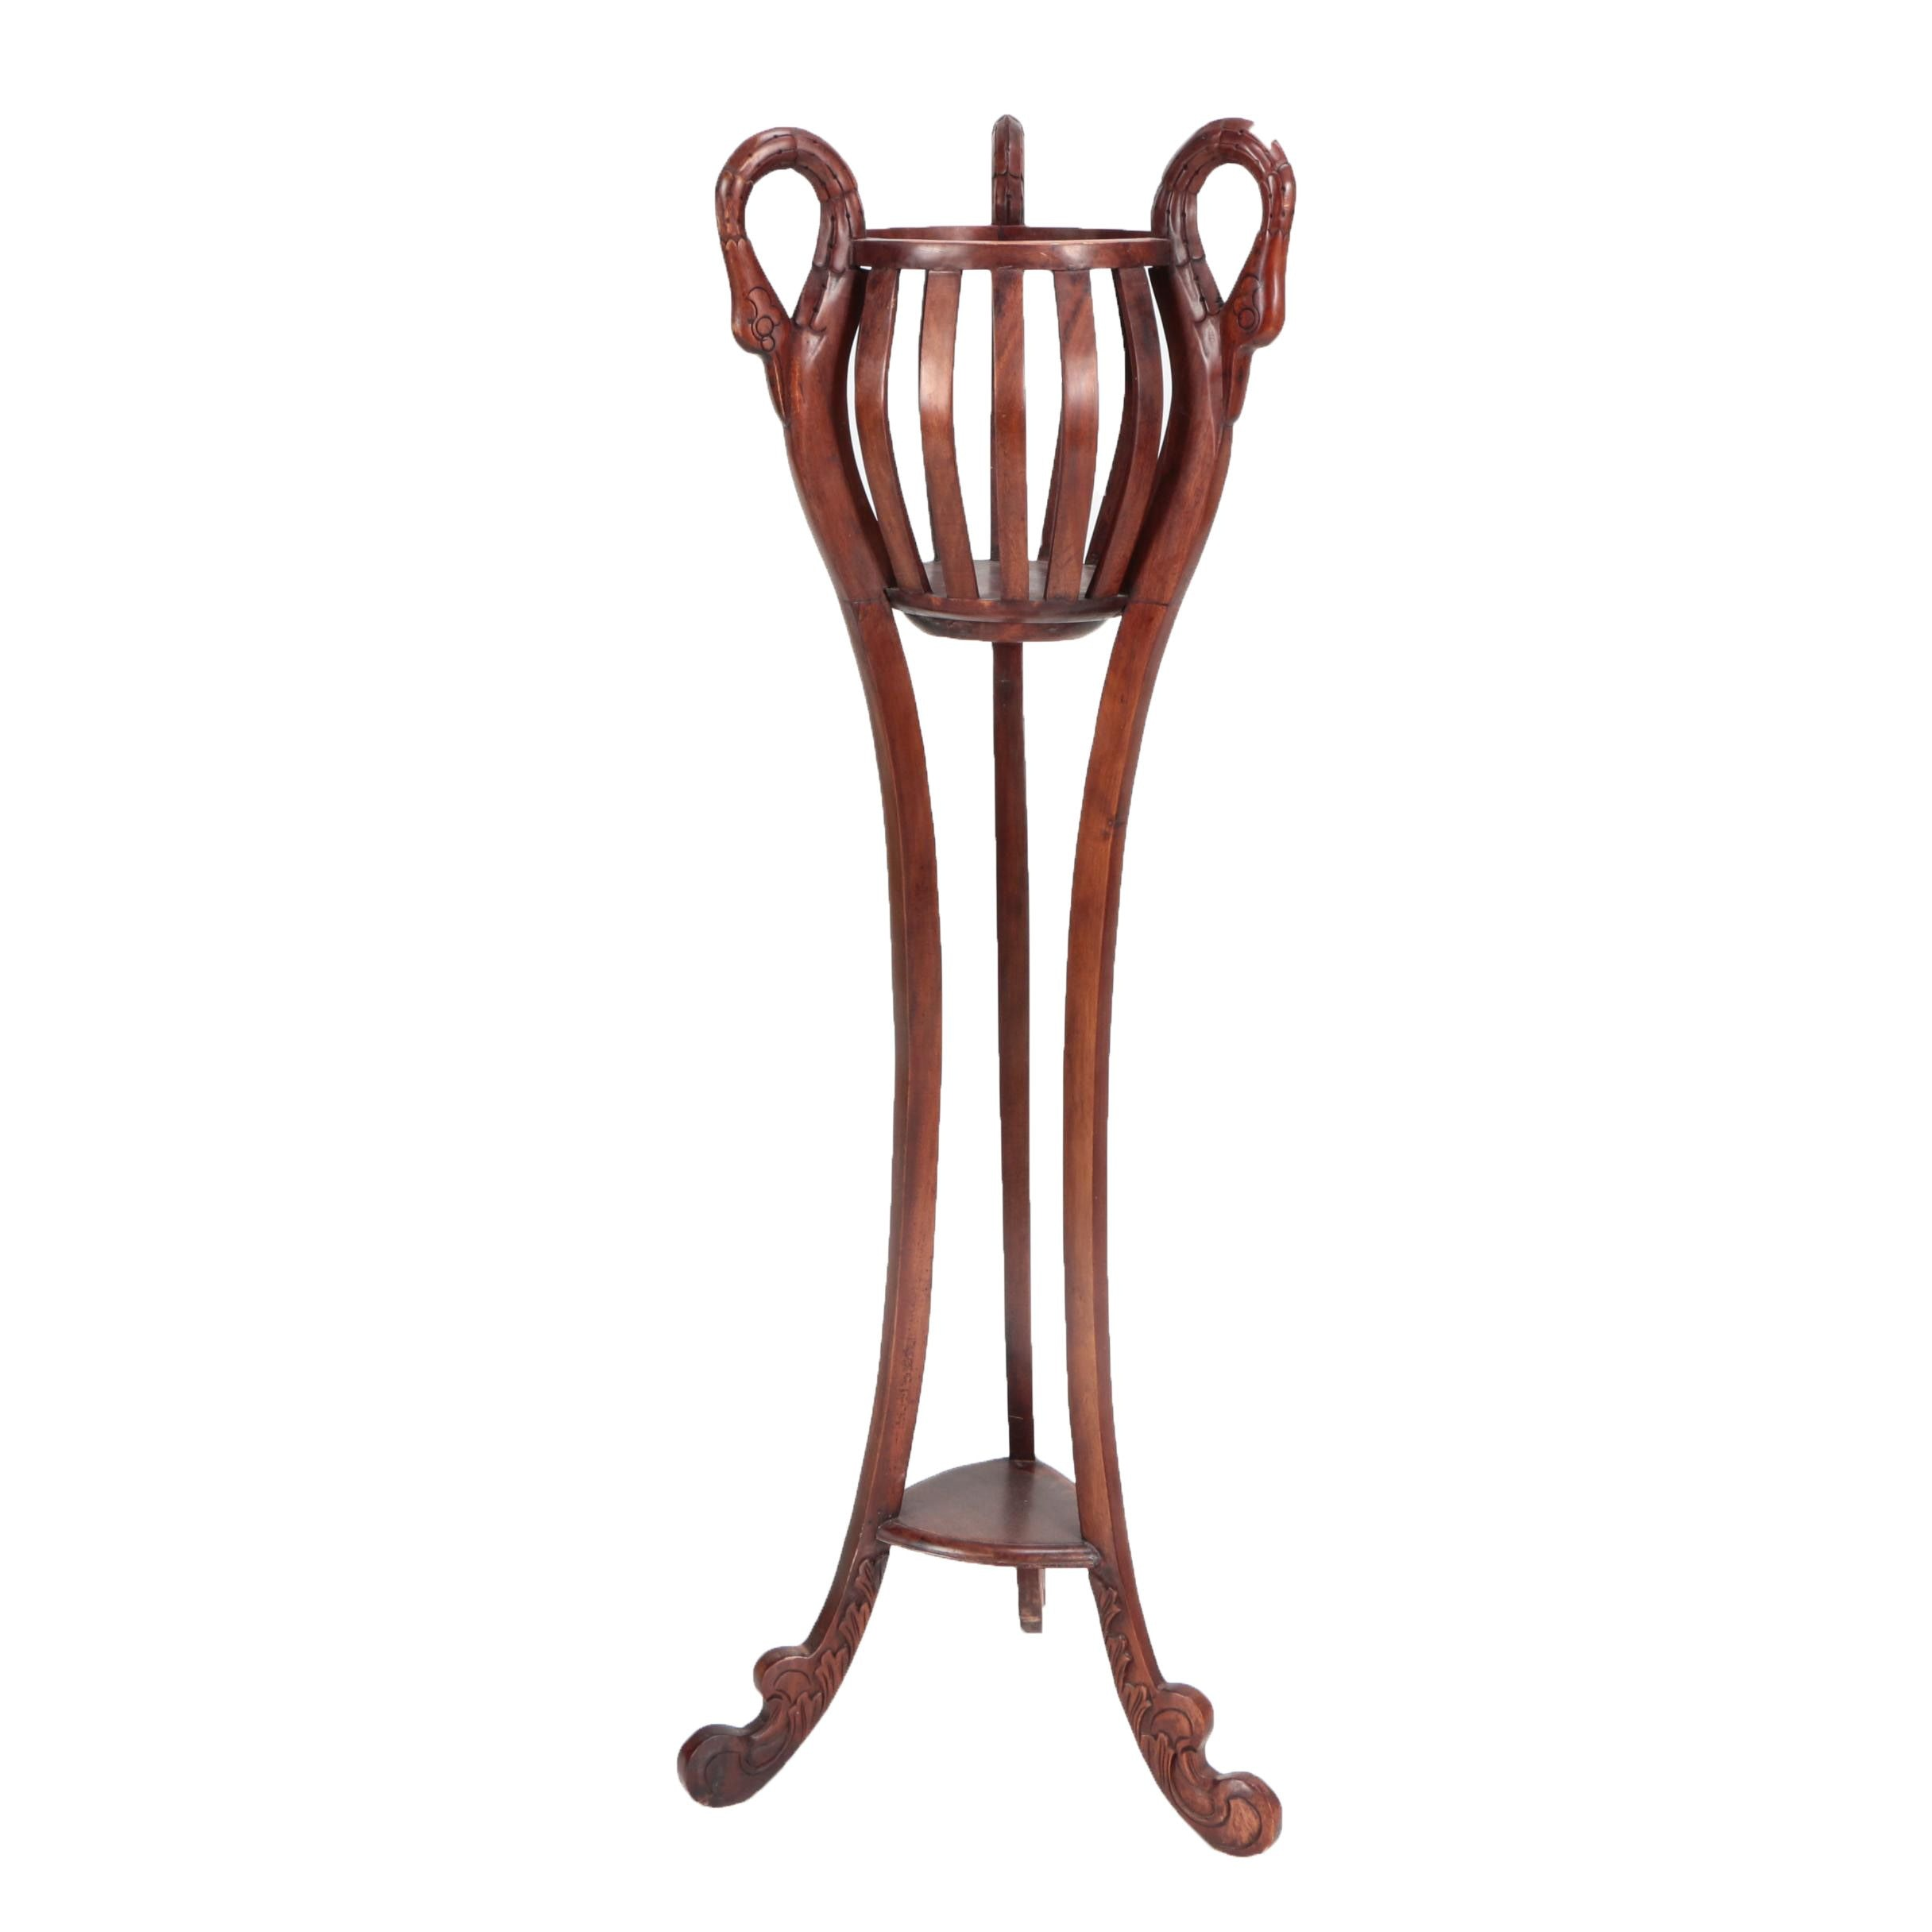 Vintage Victorian Style Wooden Plant Stand with Swan Neck Supports